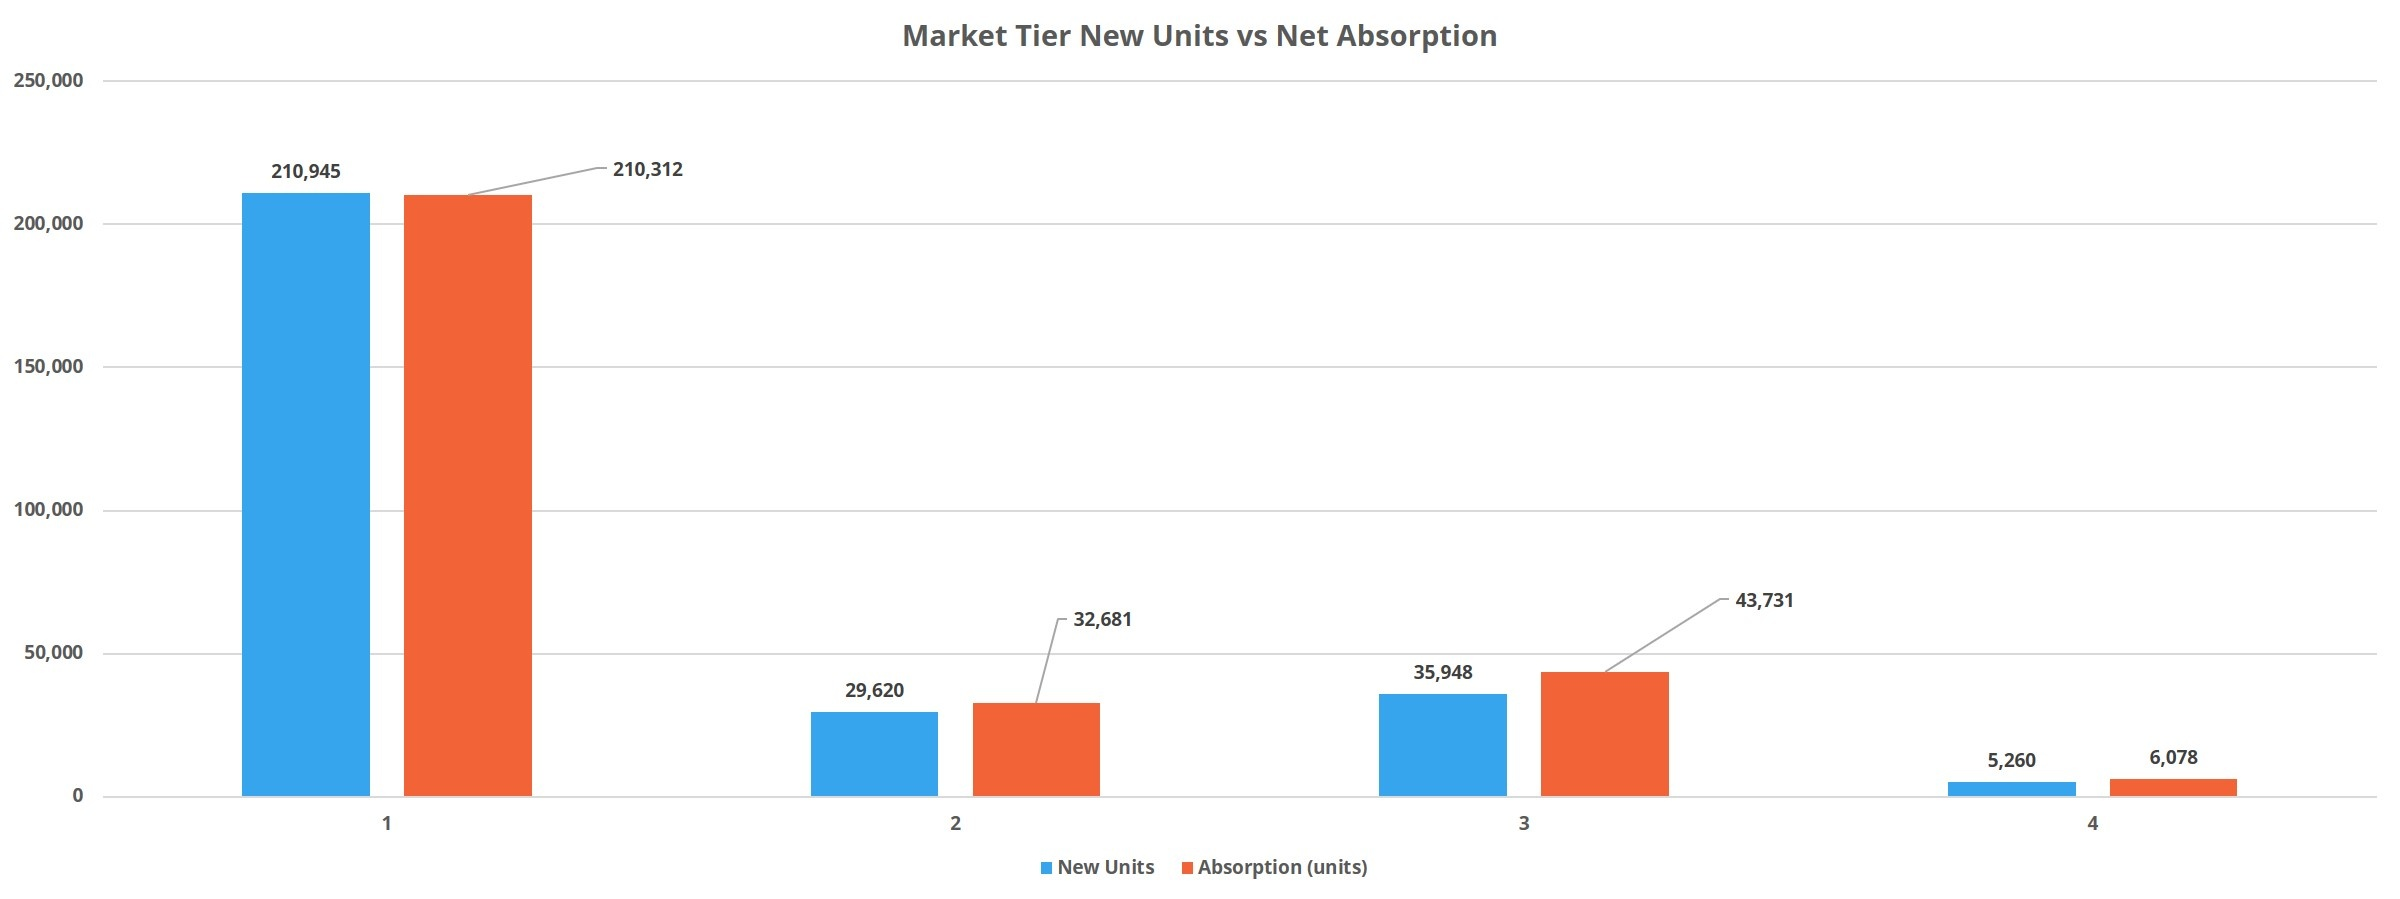 Market Tier New Units vs Net Absorption